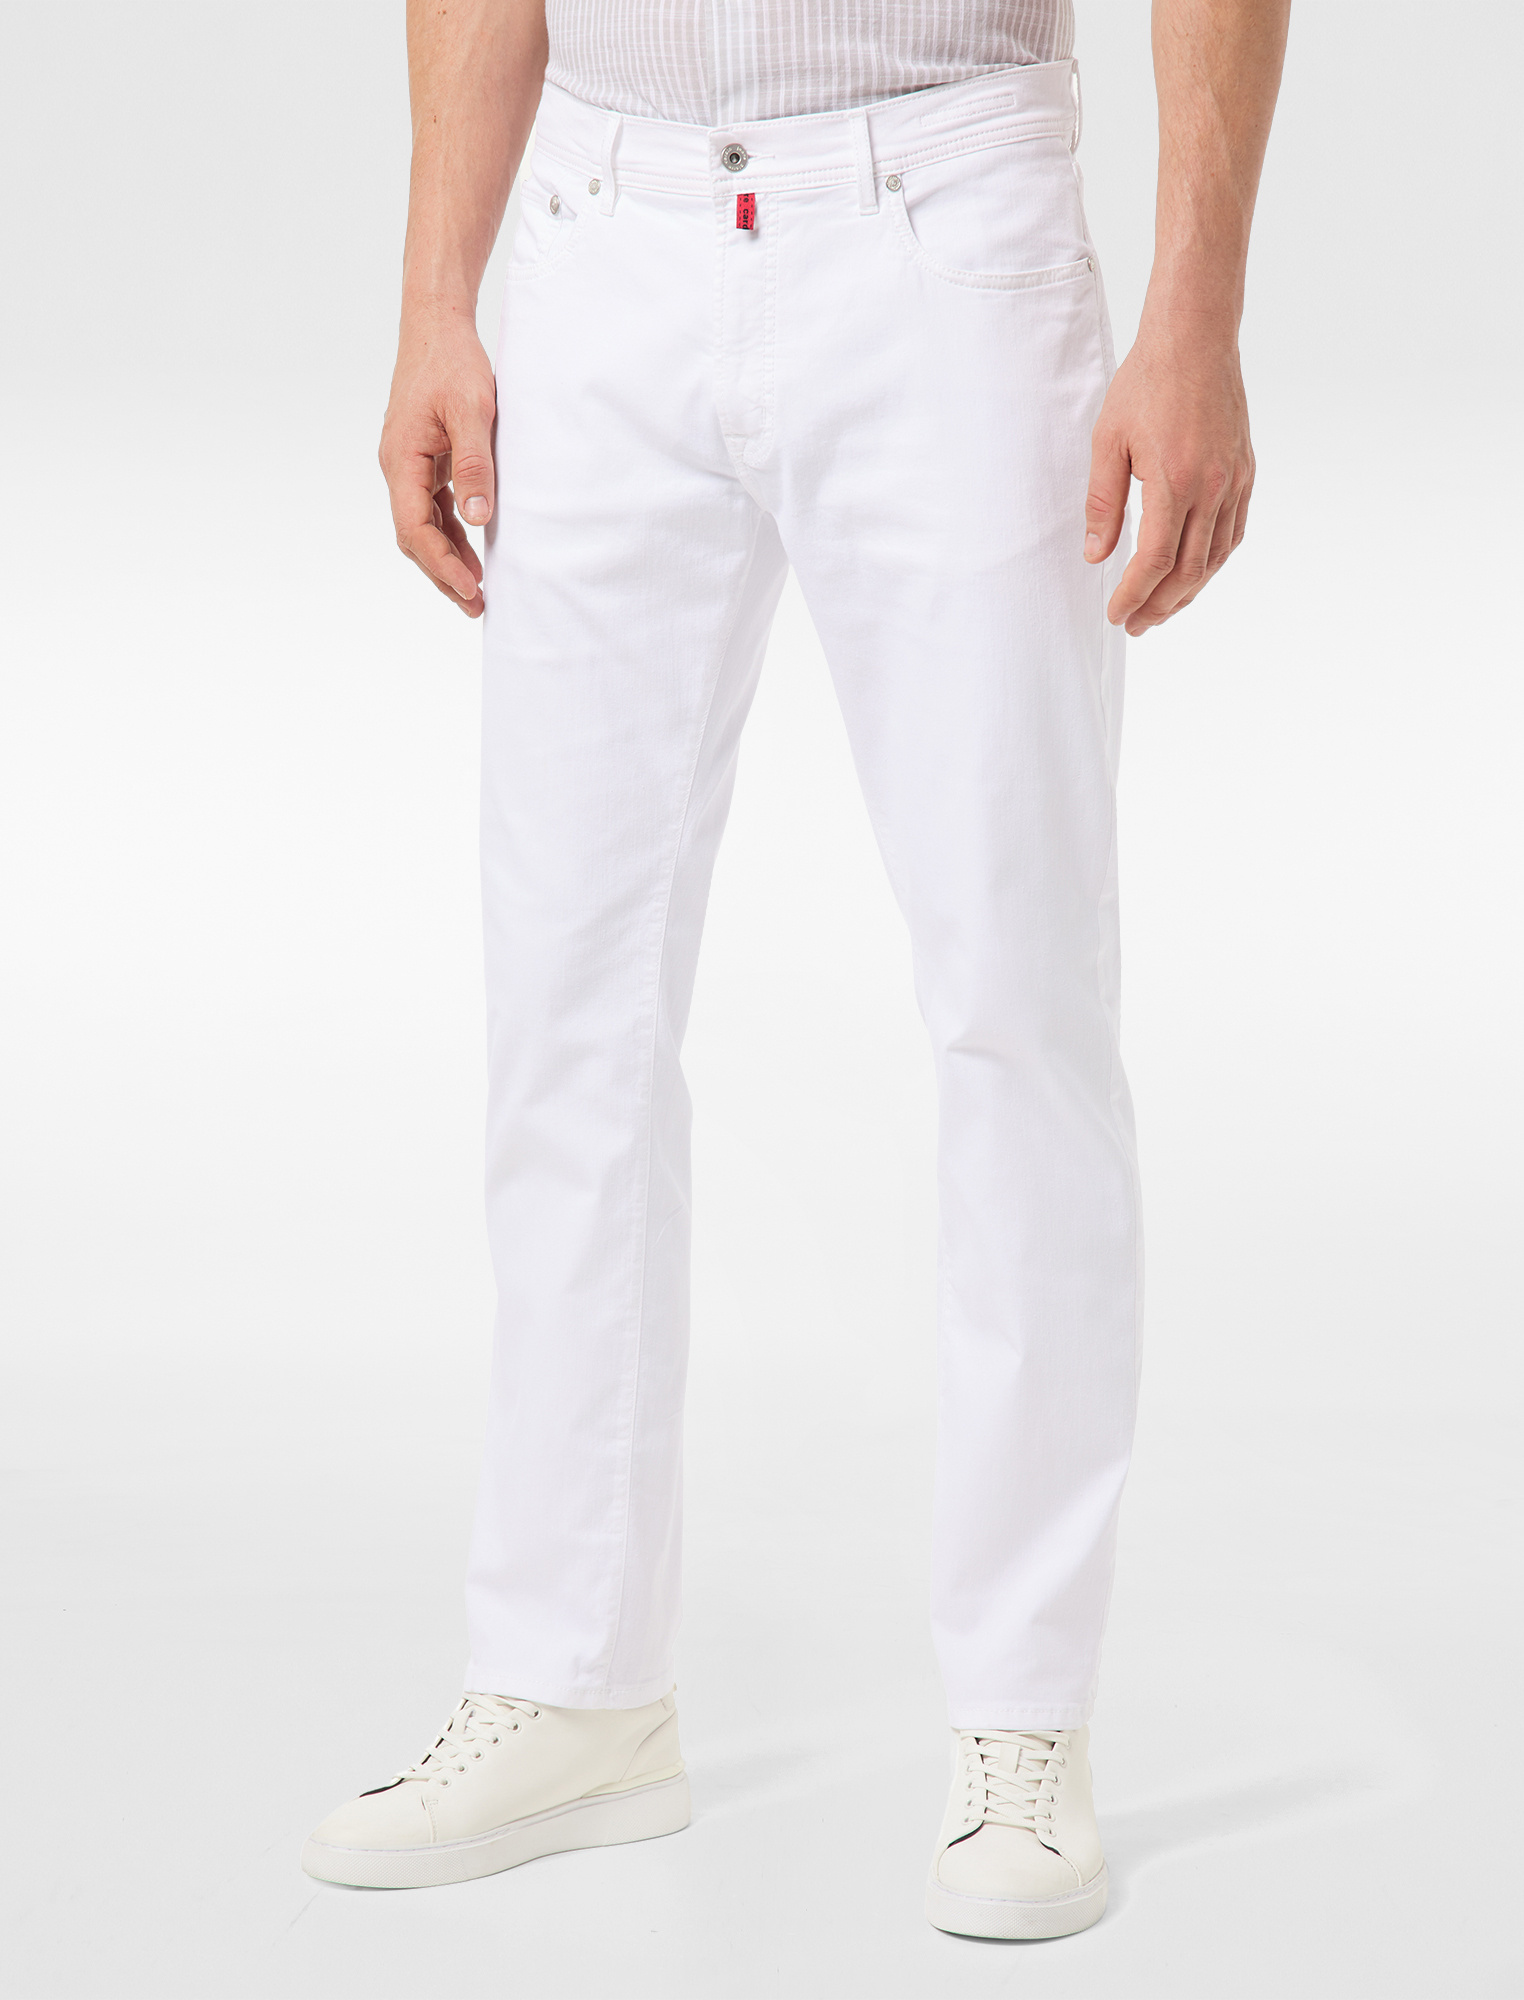 Jeans Lyon Airtouch